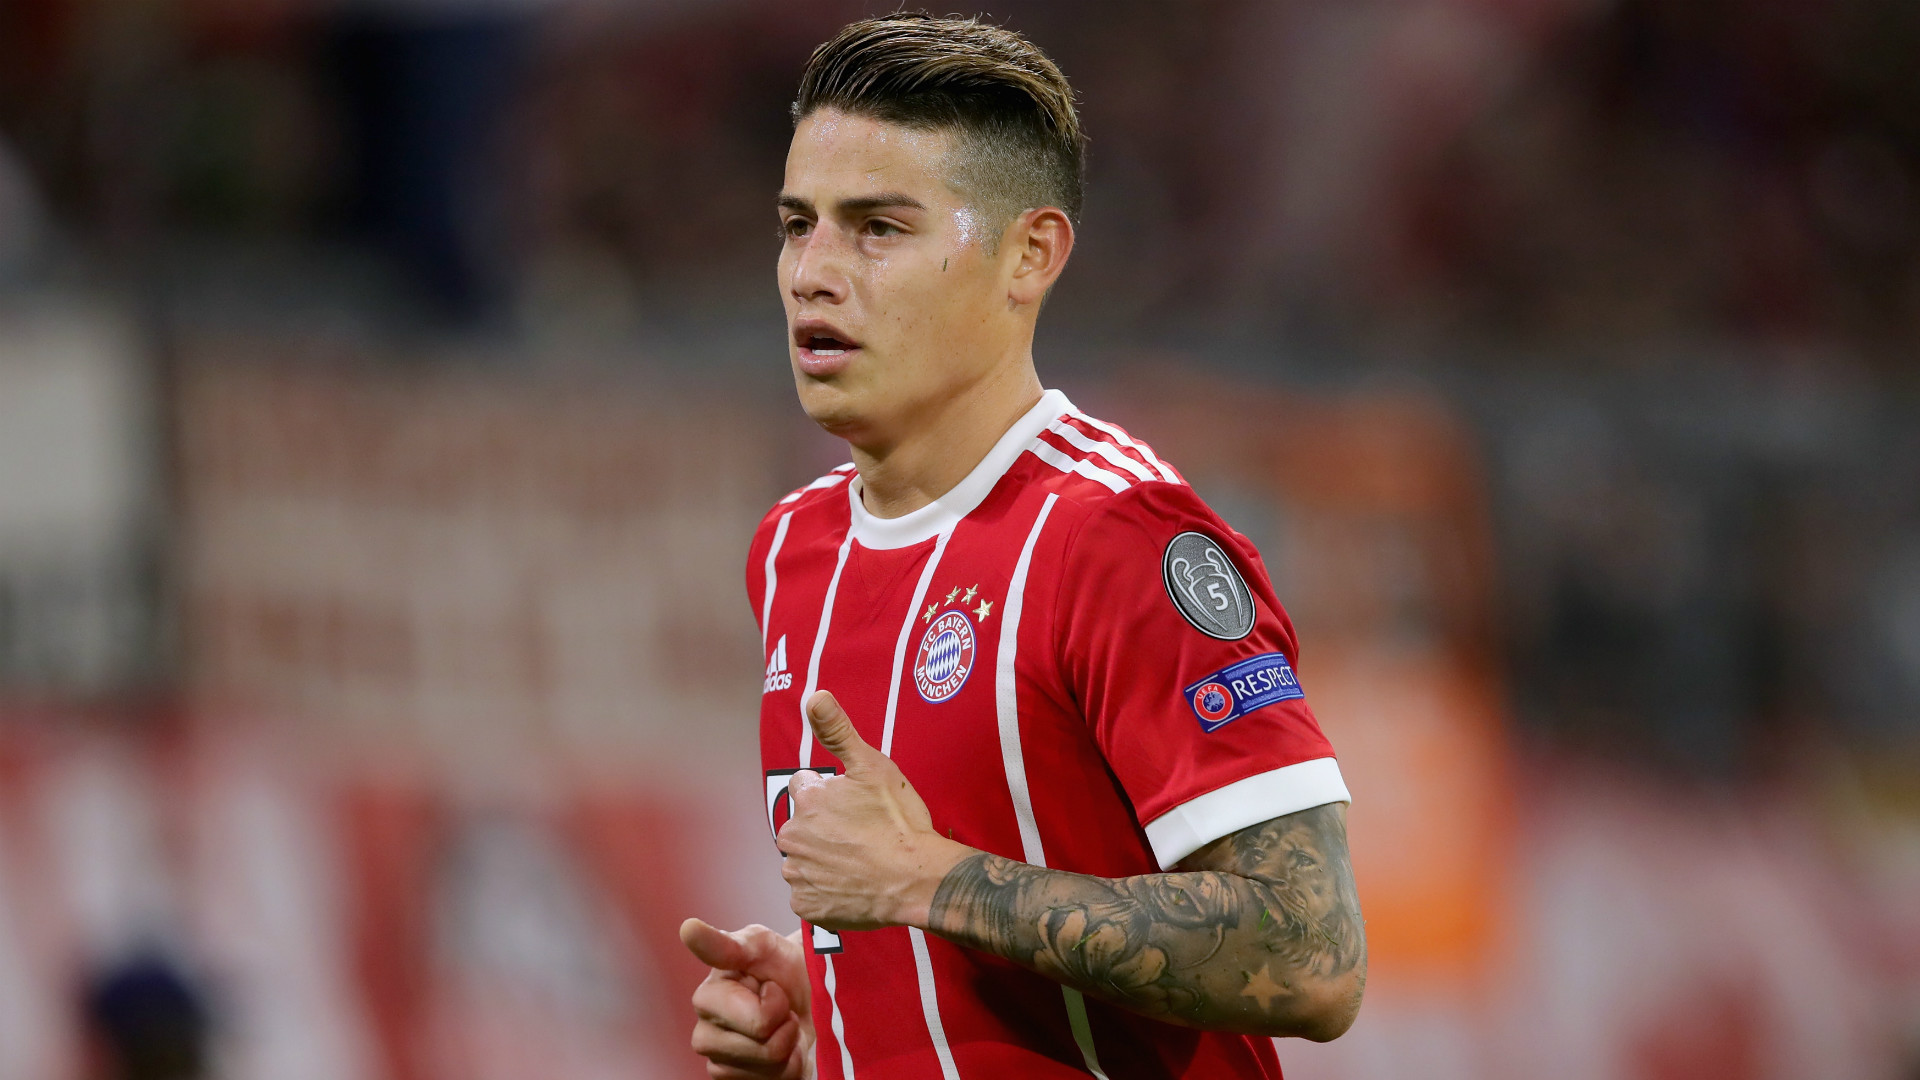 James wants to stay at Bayern Munich after change of perception